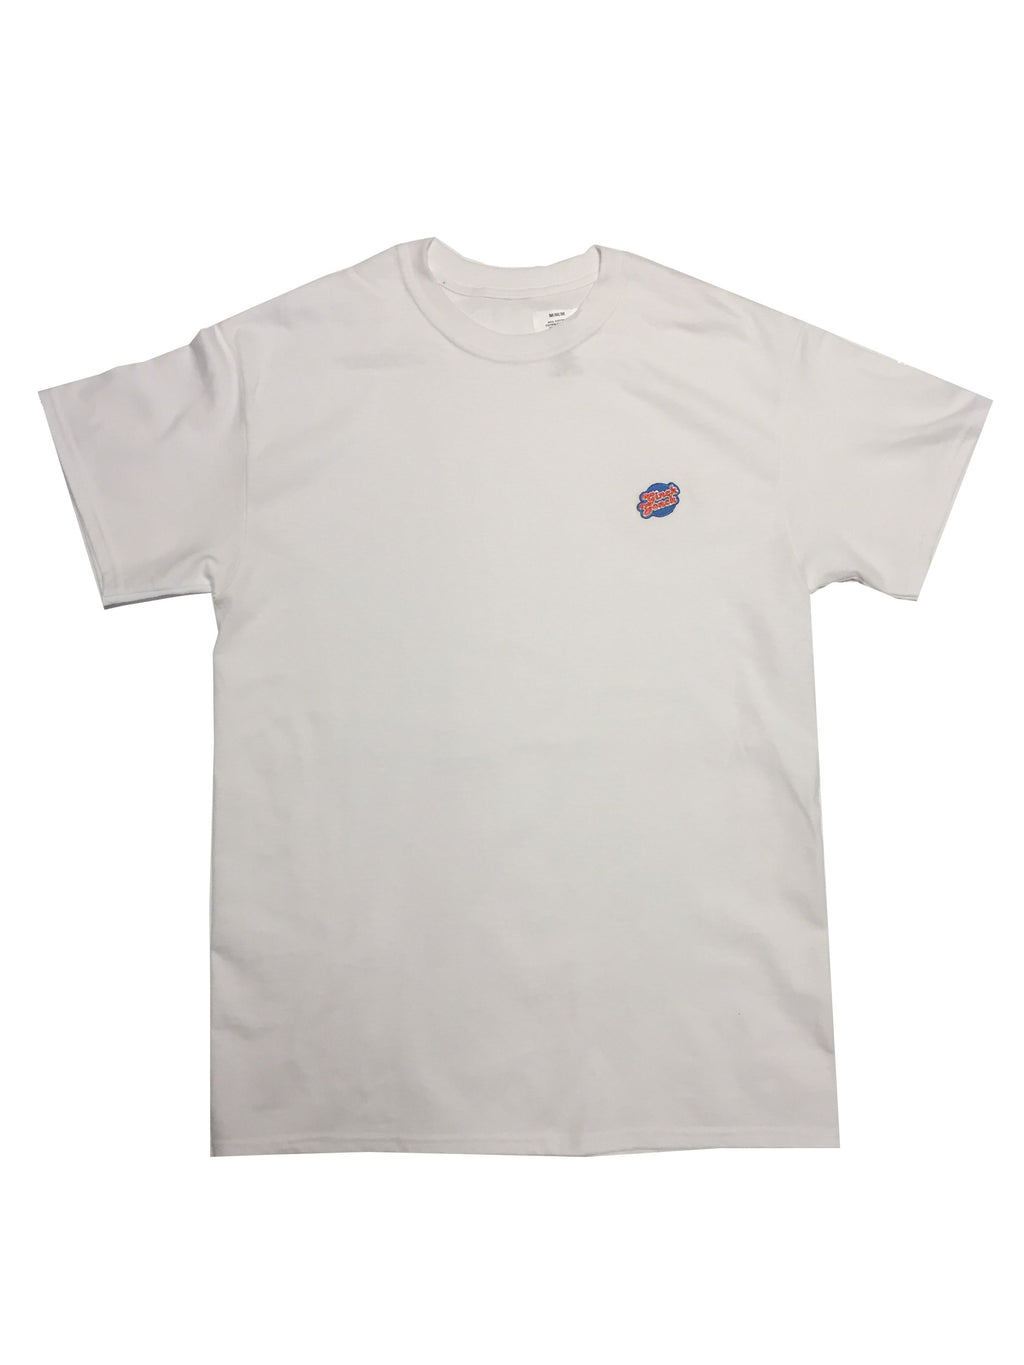 GG White T-Shirt with Full Logo (Men & Women)